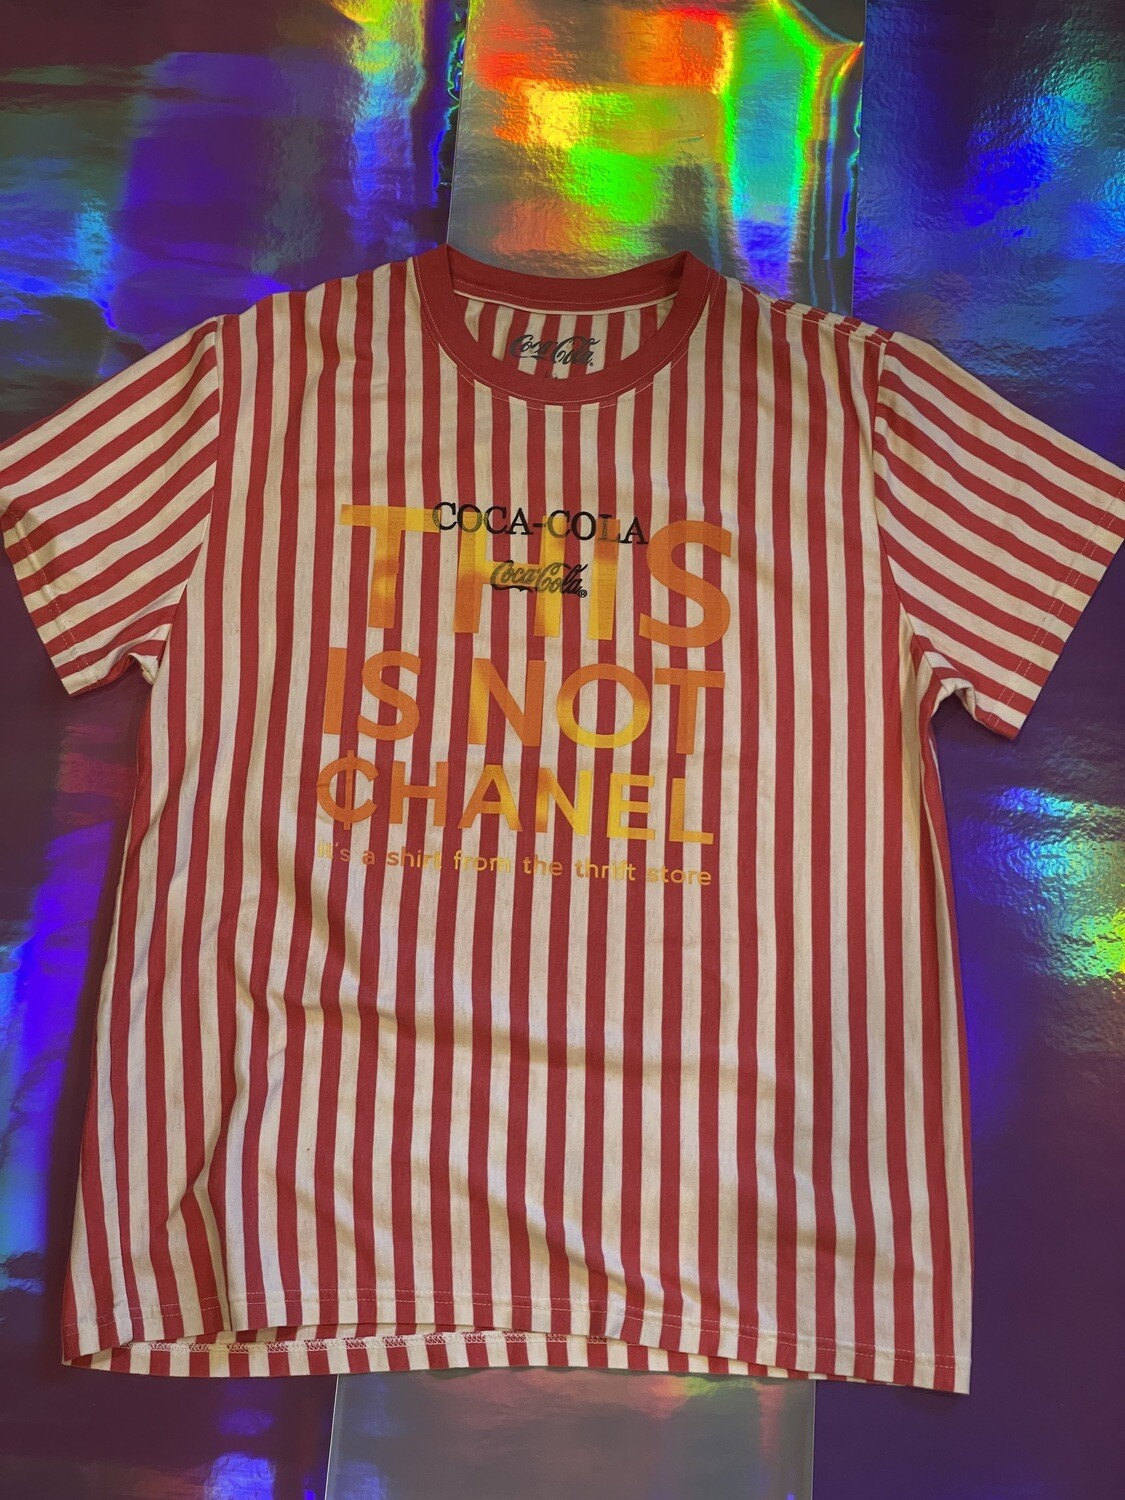 This Is Not ¢hanel - NFC clothing - Striped Coca Cola Red Shirt